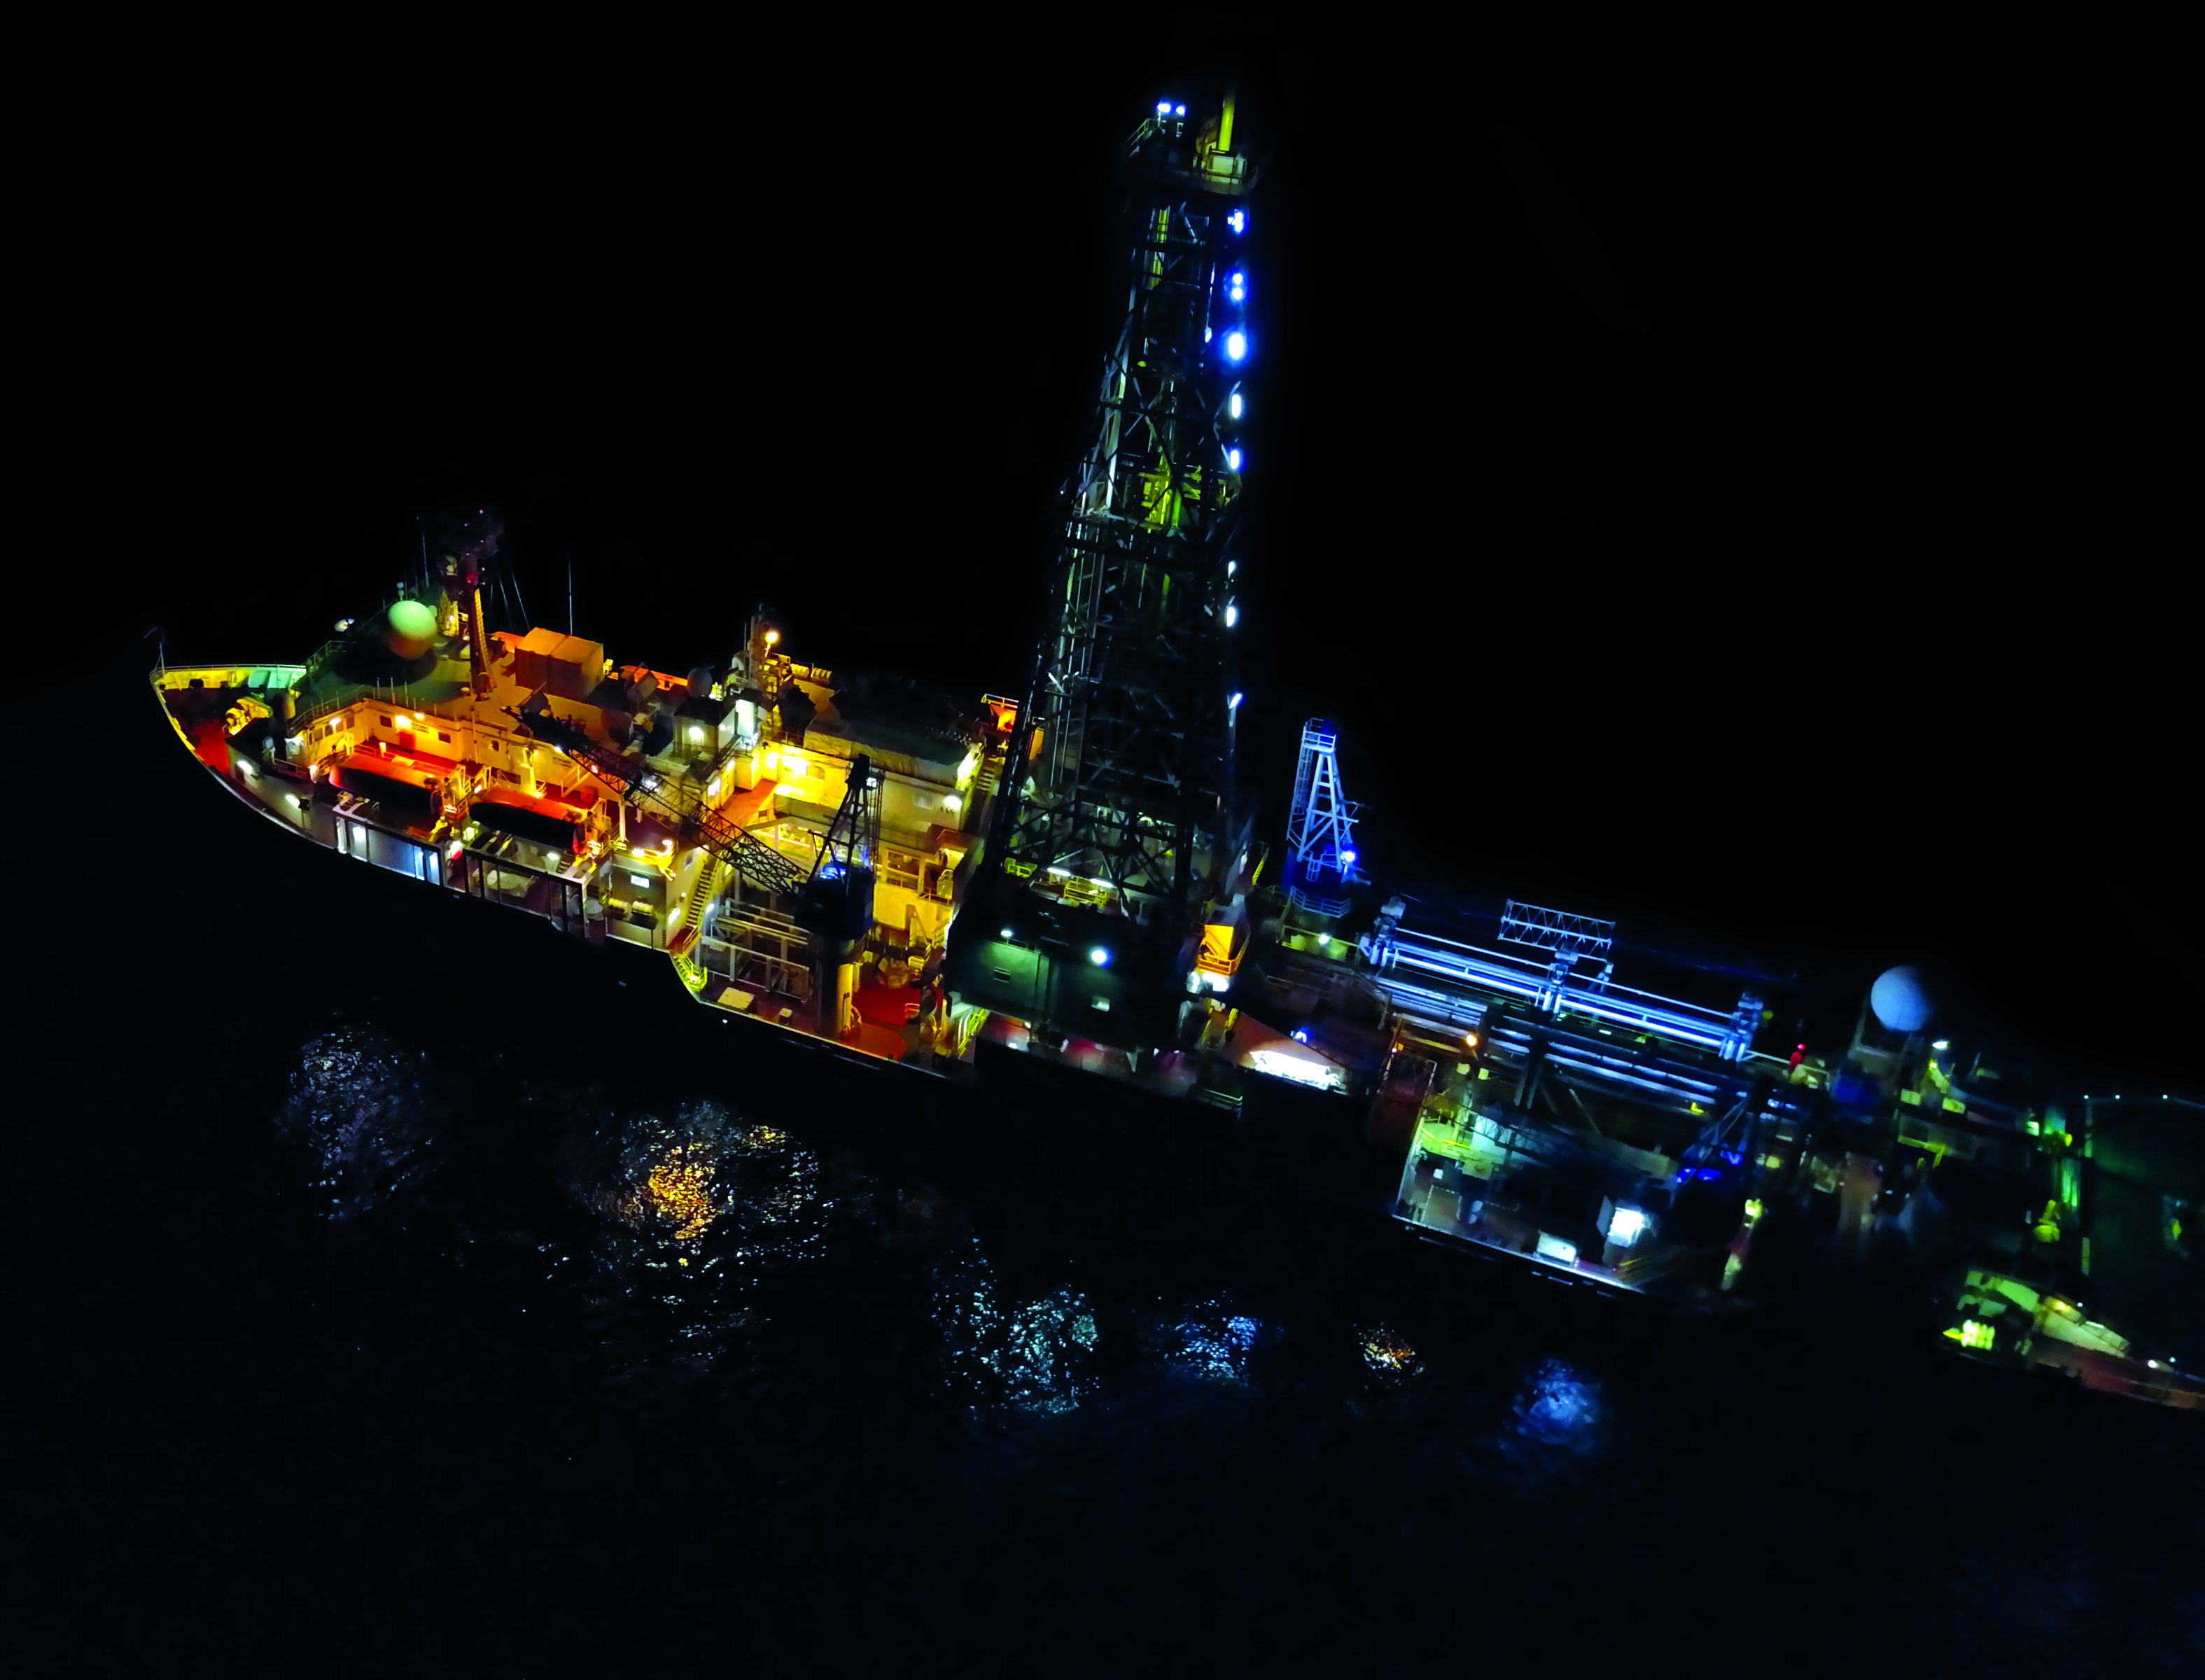 Night vision of the scientific drillship